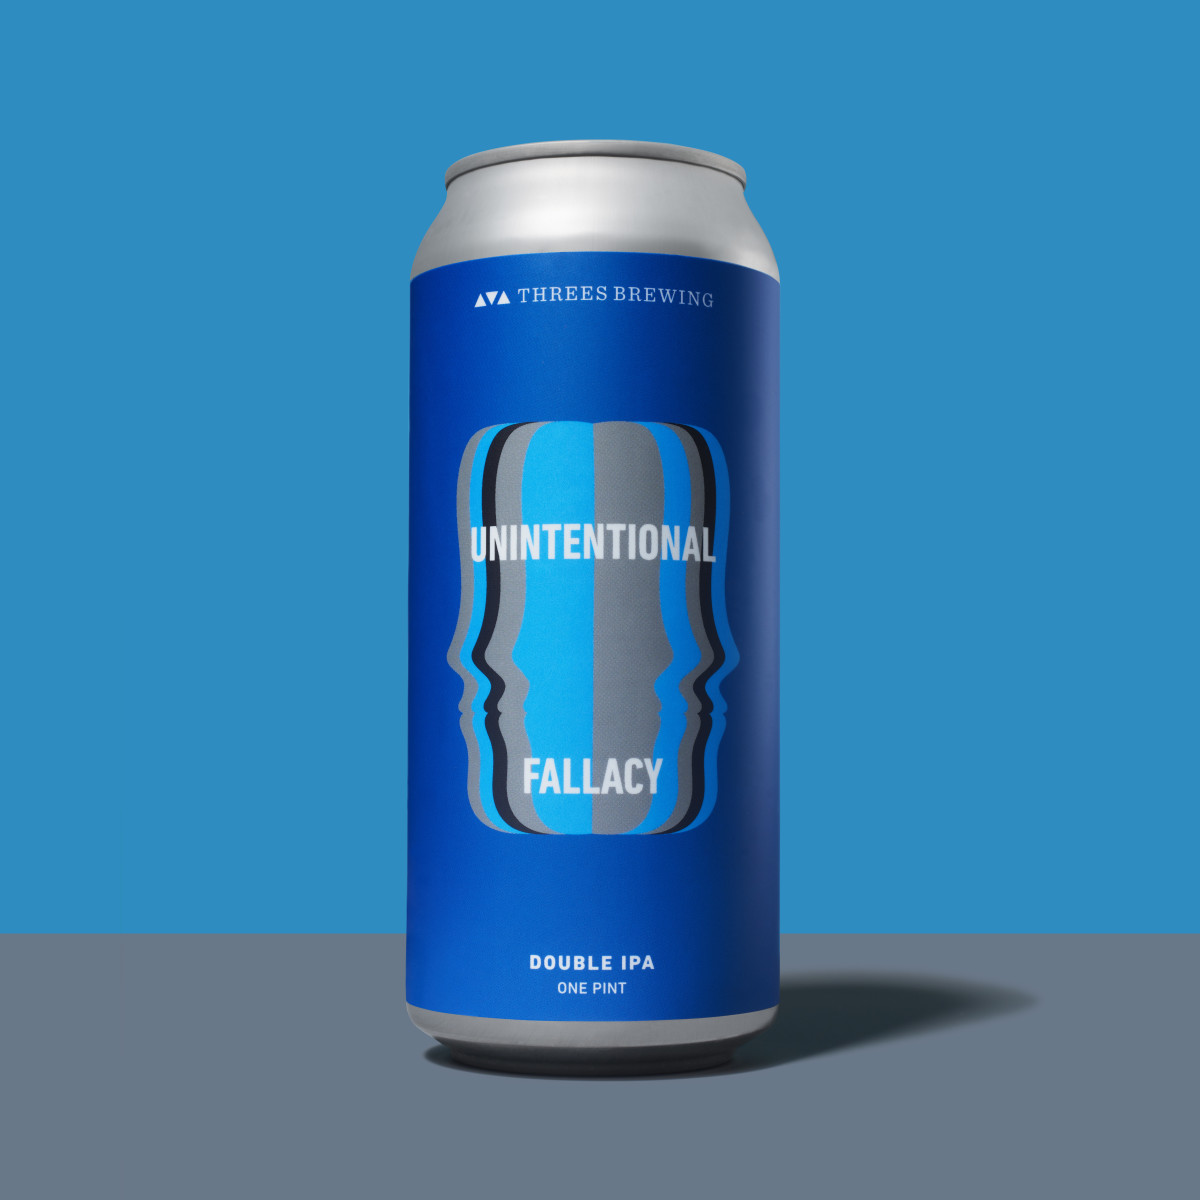 Unintentional Fallacy Double IPA